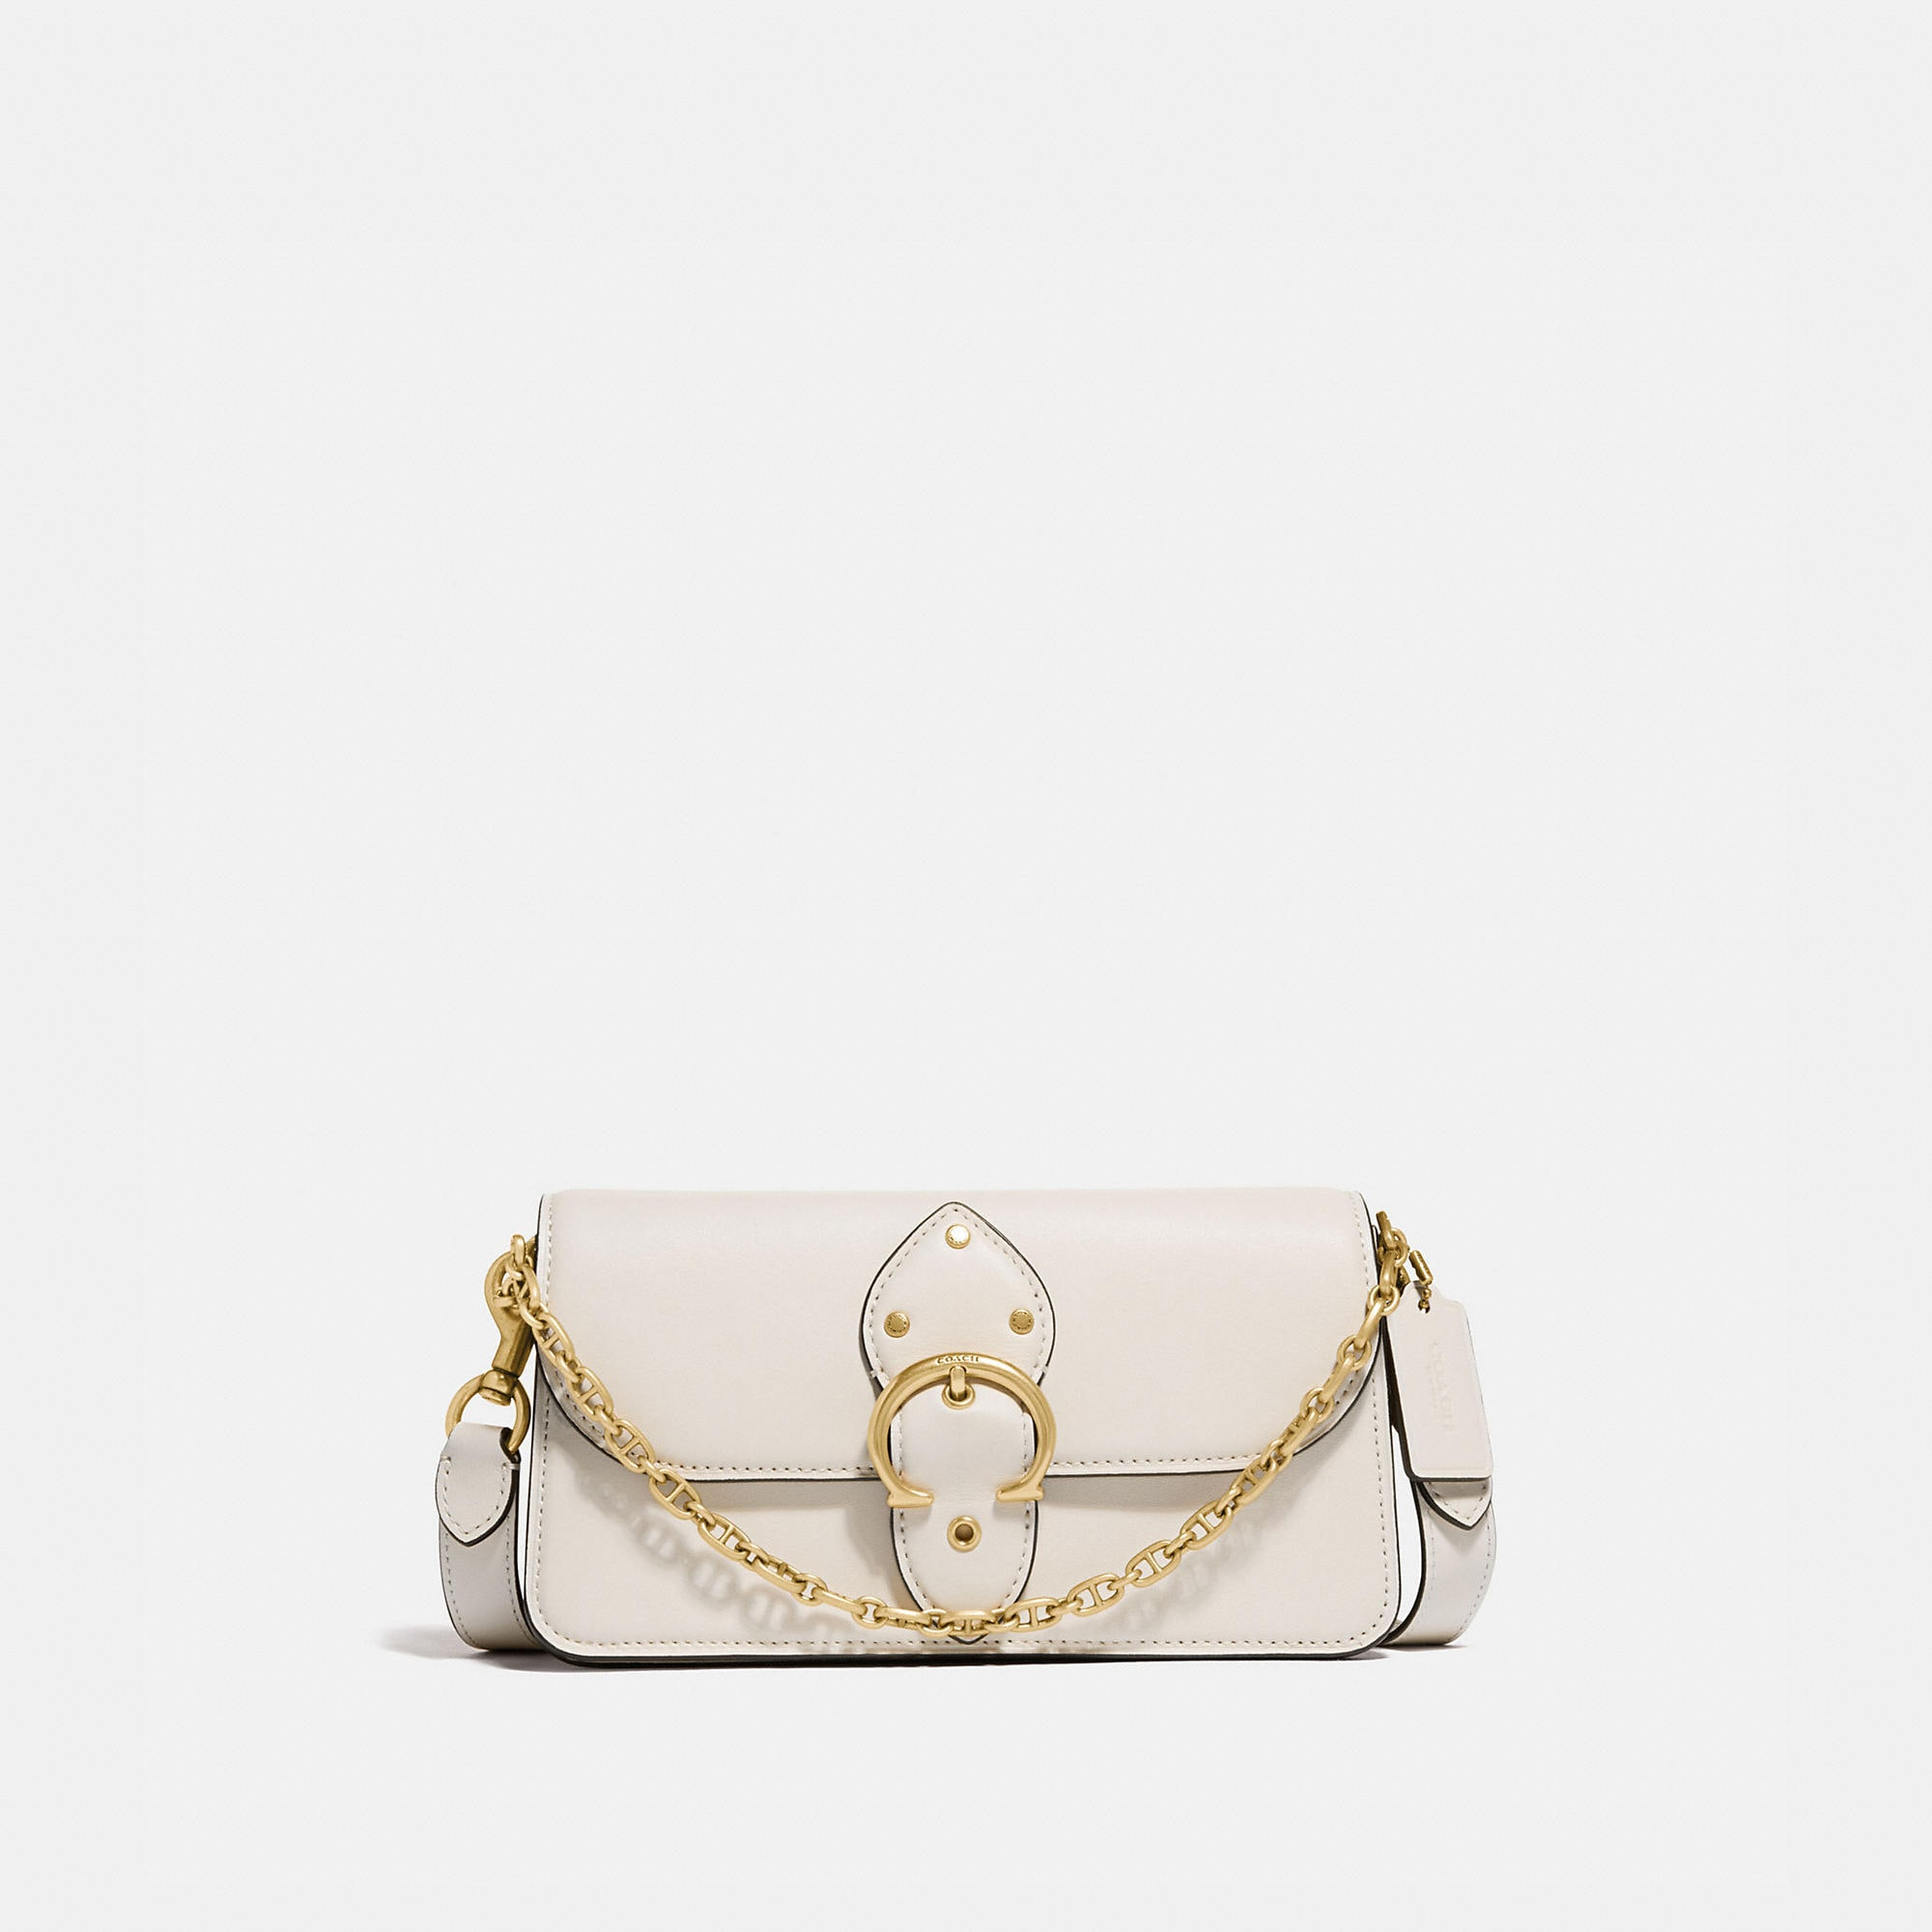 Coach COACH BEAT CROSSBODY CLUTCH - WOMEN'S